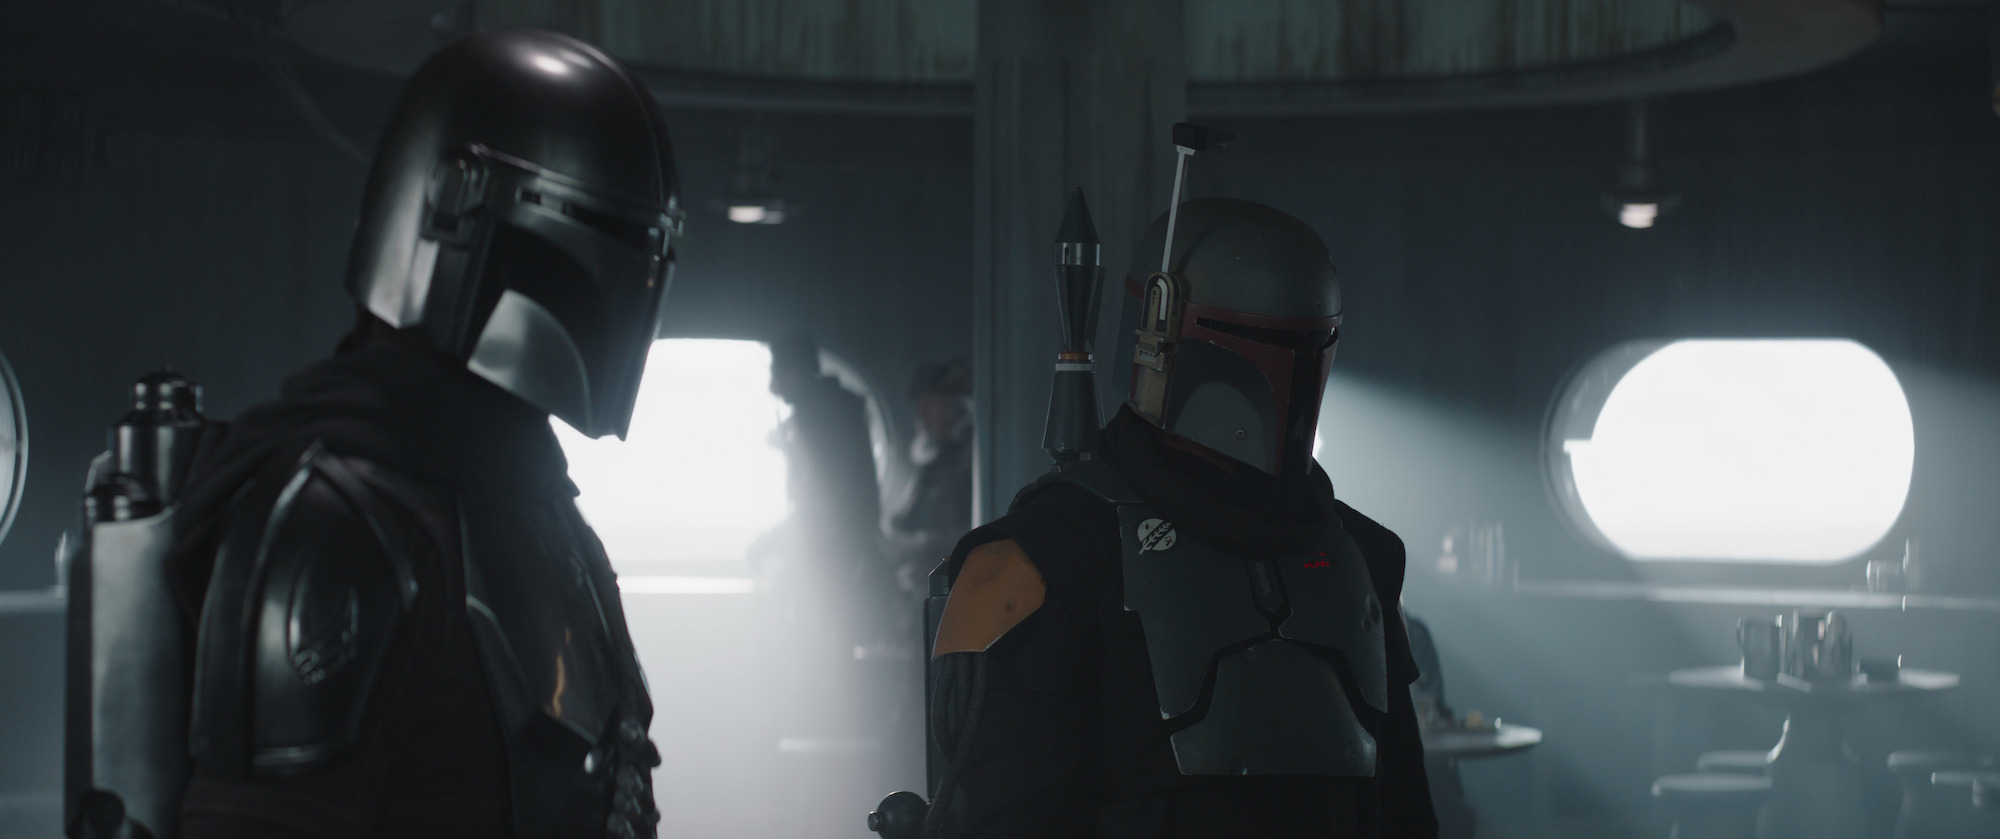 Din Djarin and Boba Fett in 'The Mandalorian' Season 2 finale